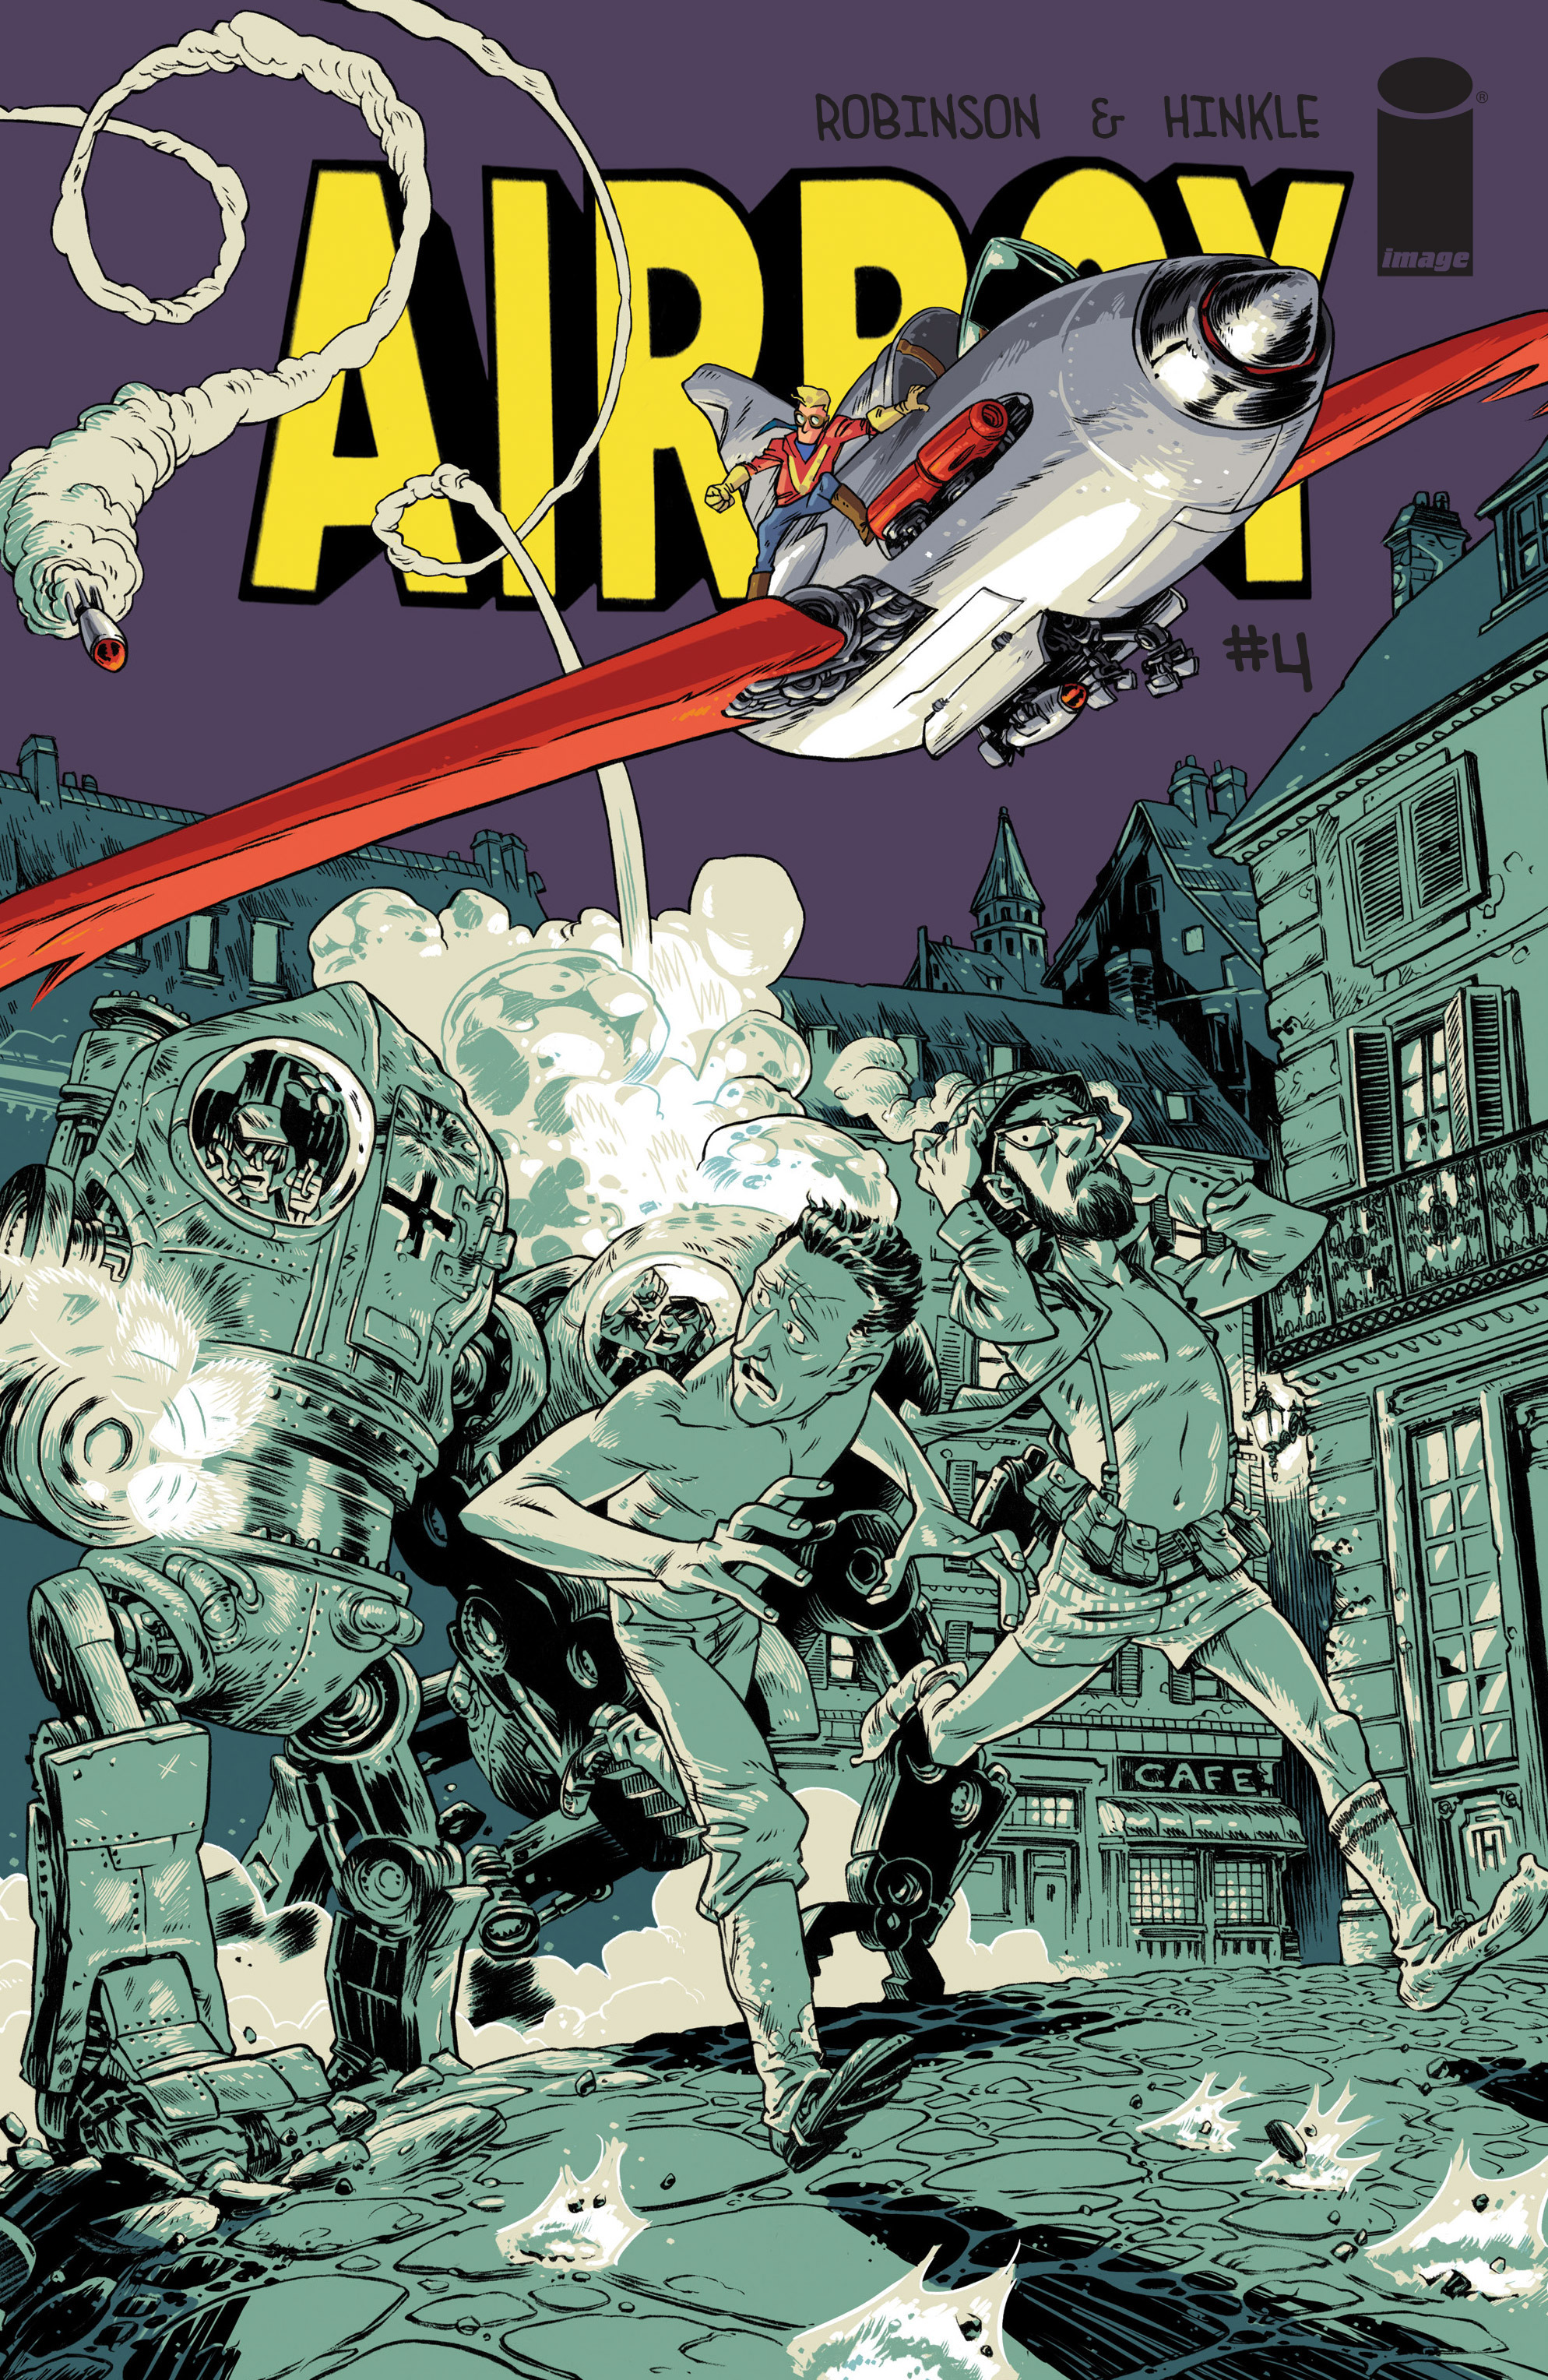 Read online Airboy comic -  Issue #4 - 1